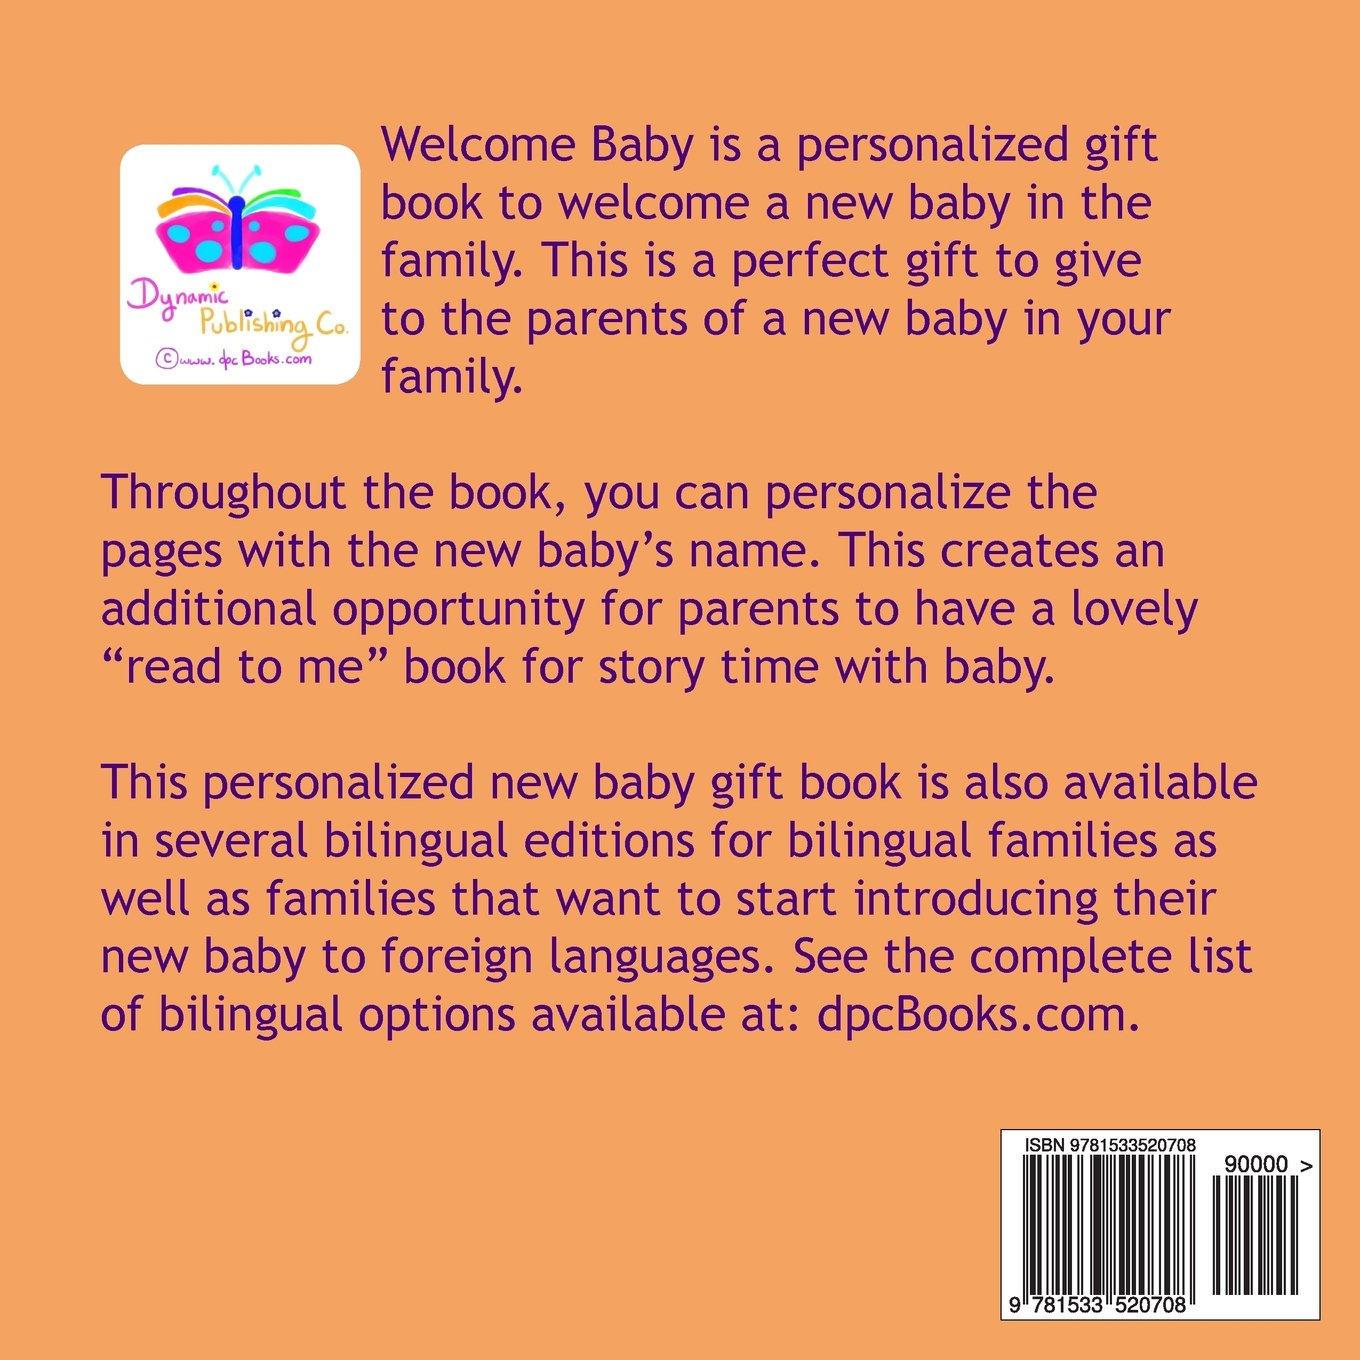 Welcome baby a personalized gift book to welcome a new baby in the welcome baby a personalized gift book to welcome a new baby in the family ziva solay zoe solay 9781533520708 books amazon negle Image collections